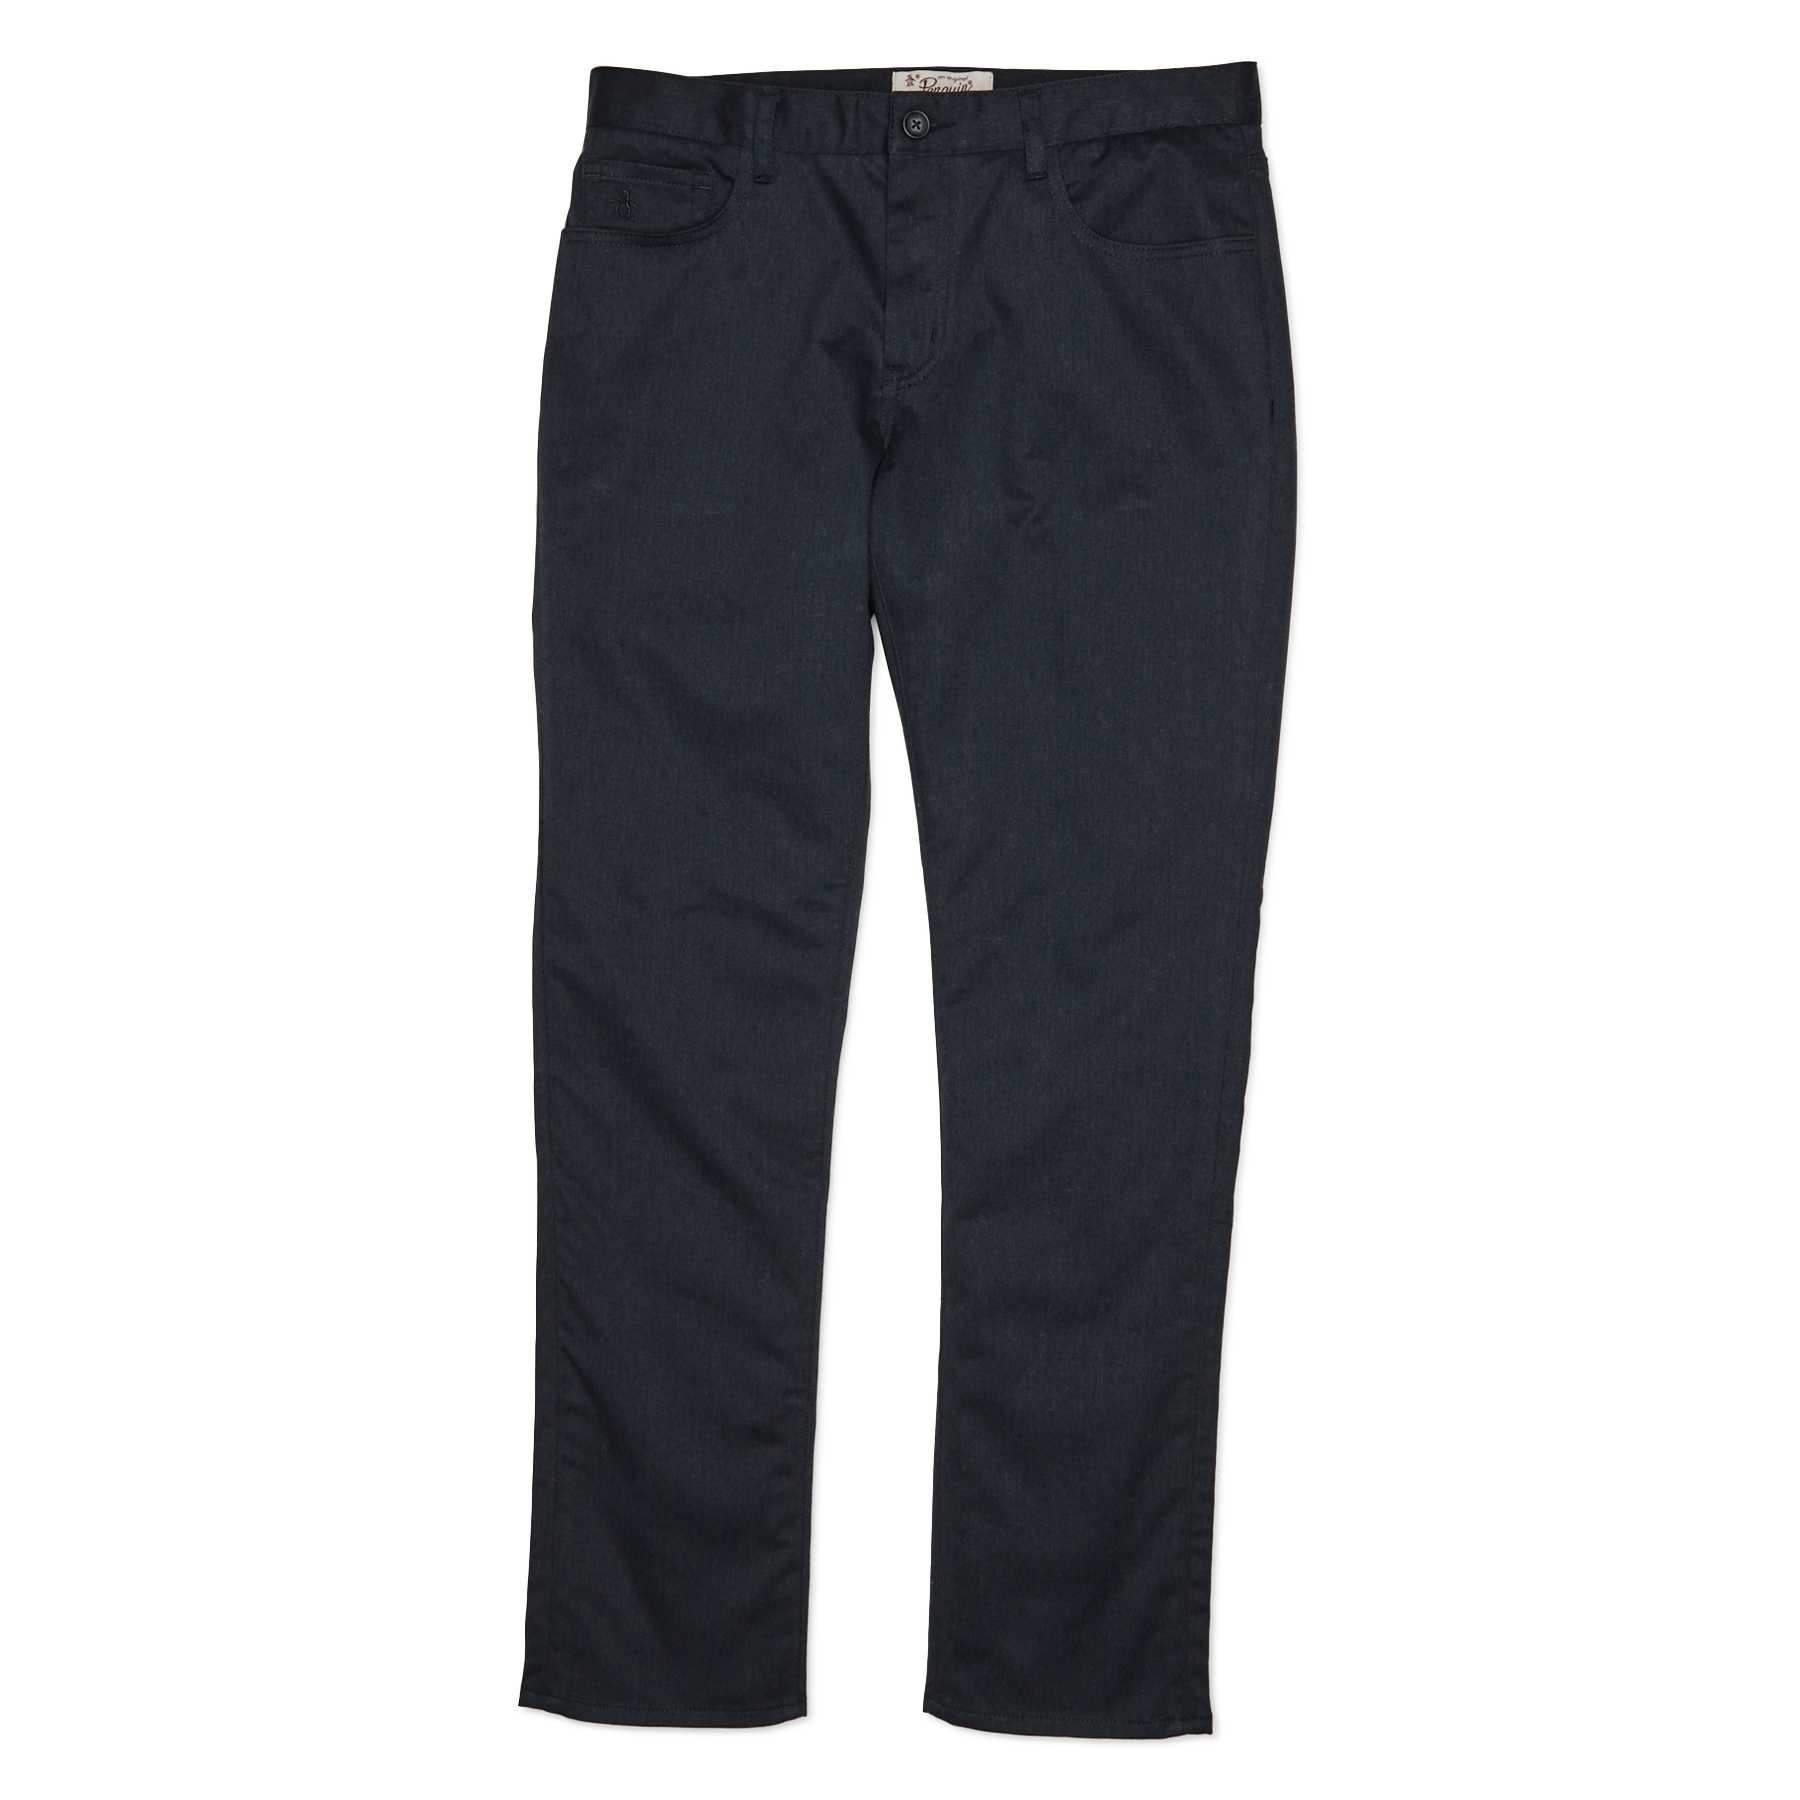 Original Penguin HEATHER TWILL FIVE POCKET PANT